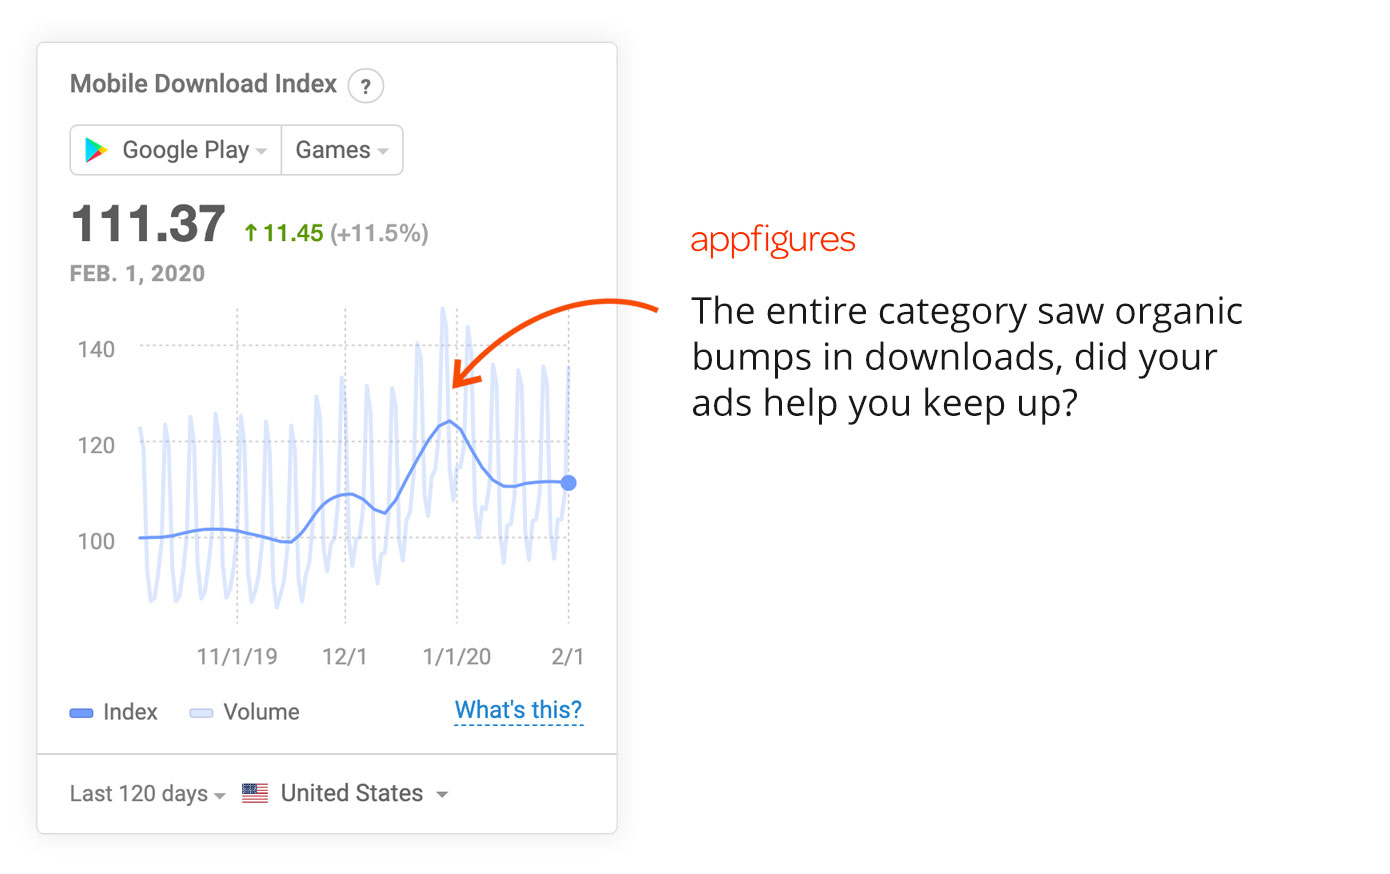 Evaluate your ad spend using the Mobile Download Index from Appfigures